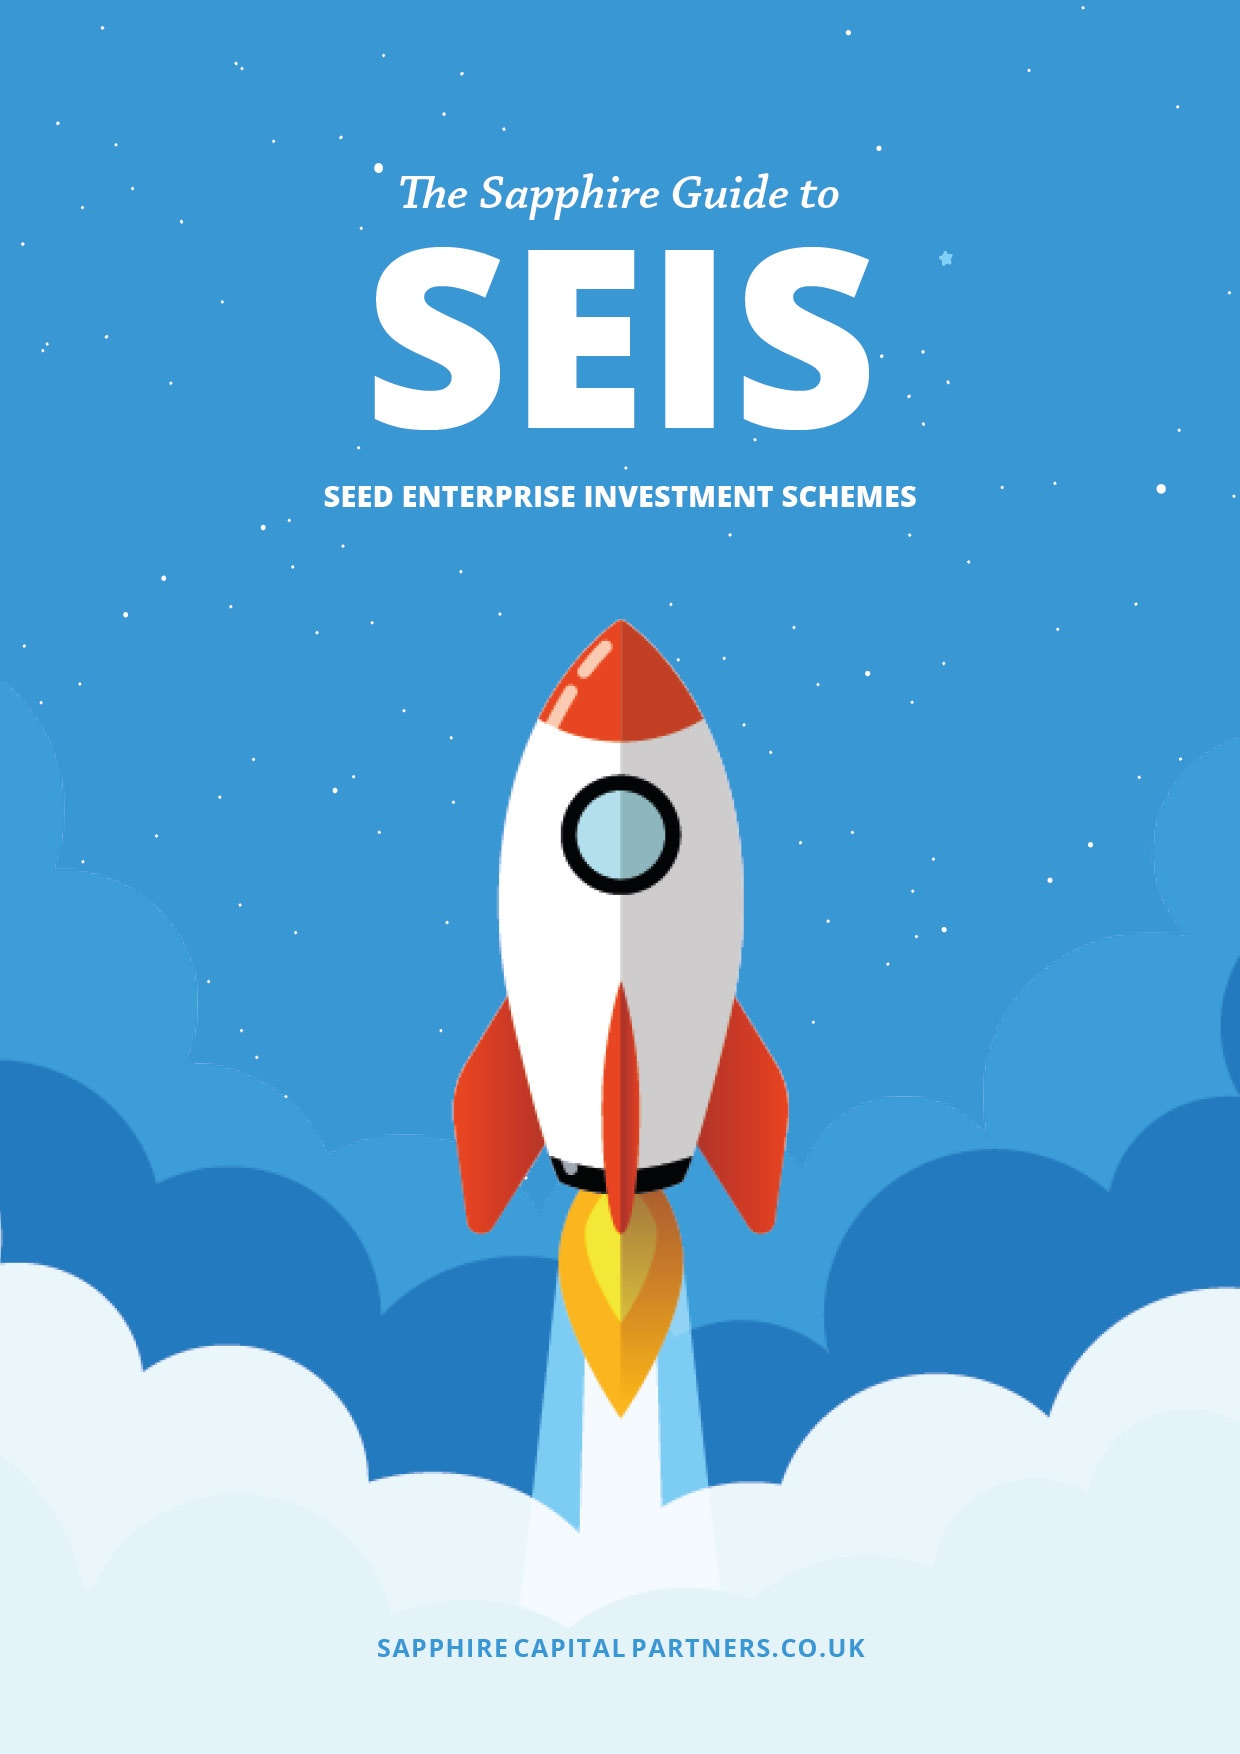 The Sapphire Guide to the Seed Enterprise Investment Scheme SEIS